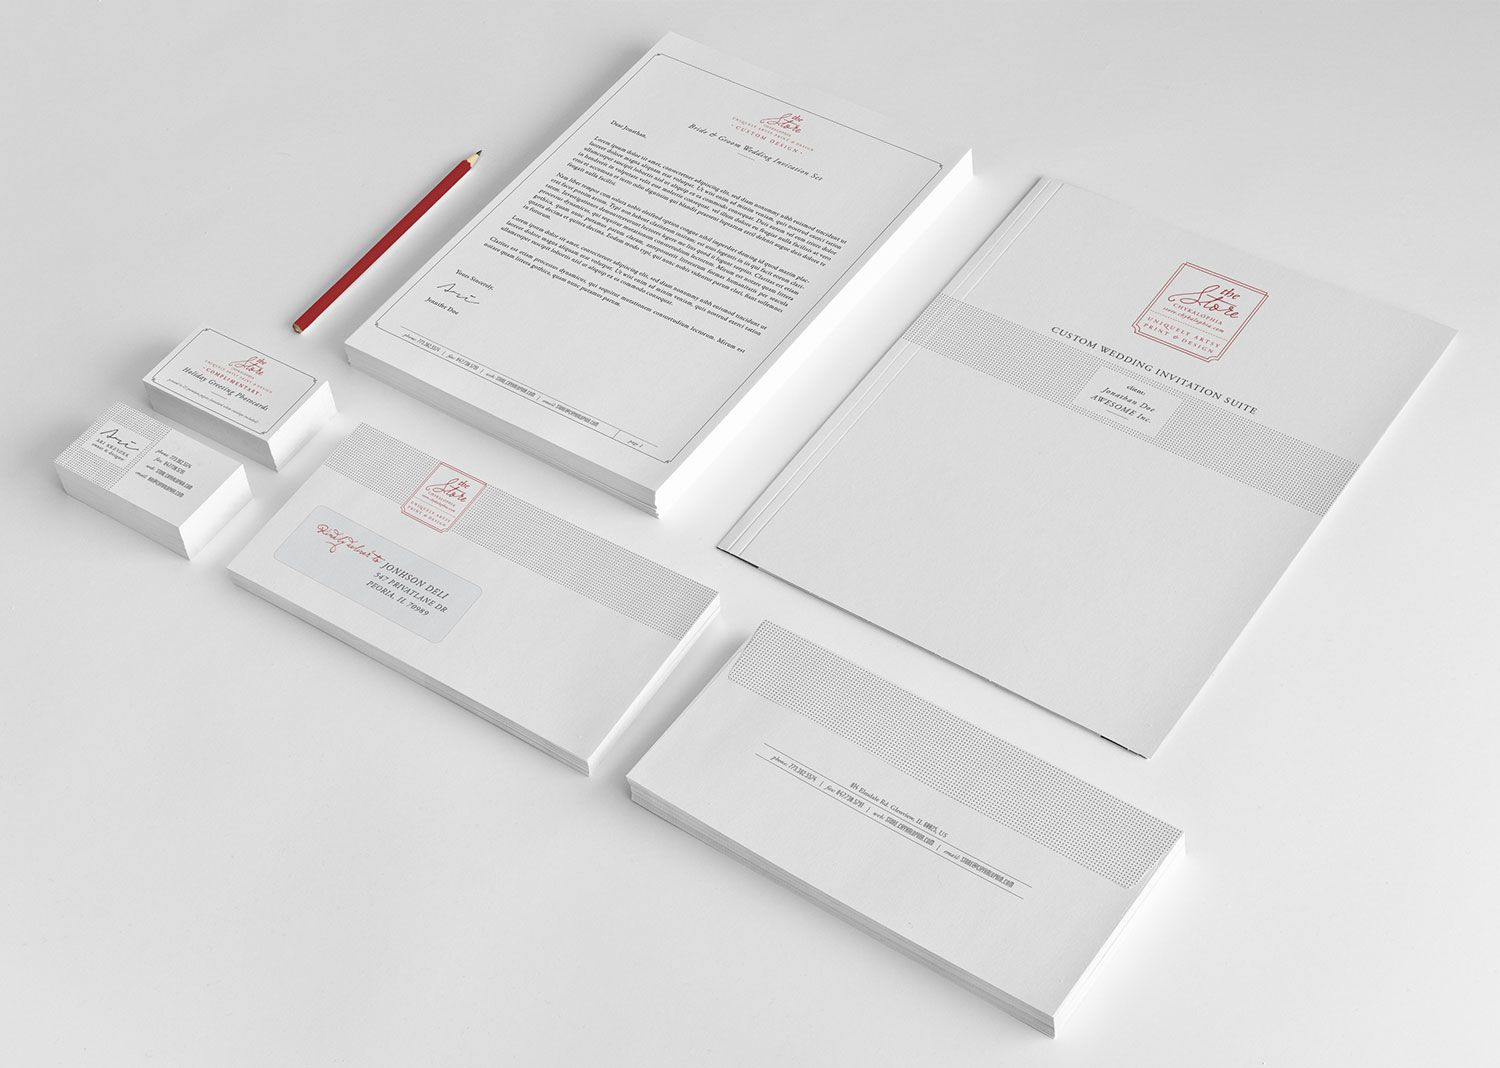 Branding stationery chykalophia the store chykalophia design branding stationery chykalophia the store card envelopesbusiness reheart Choice Image